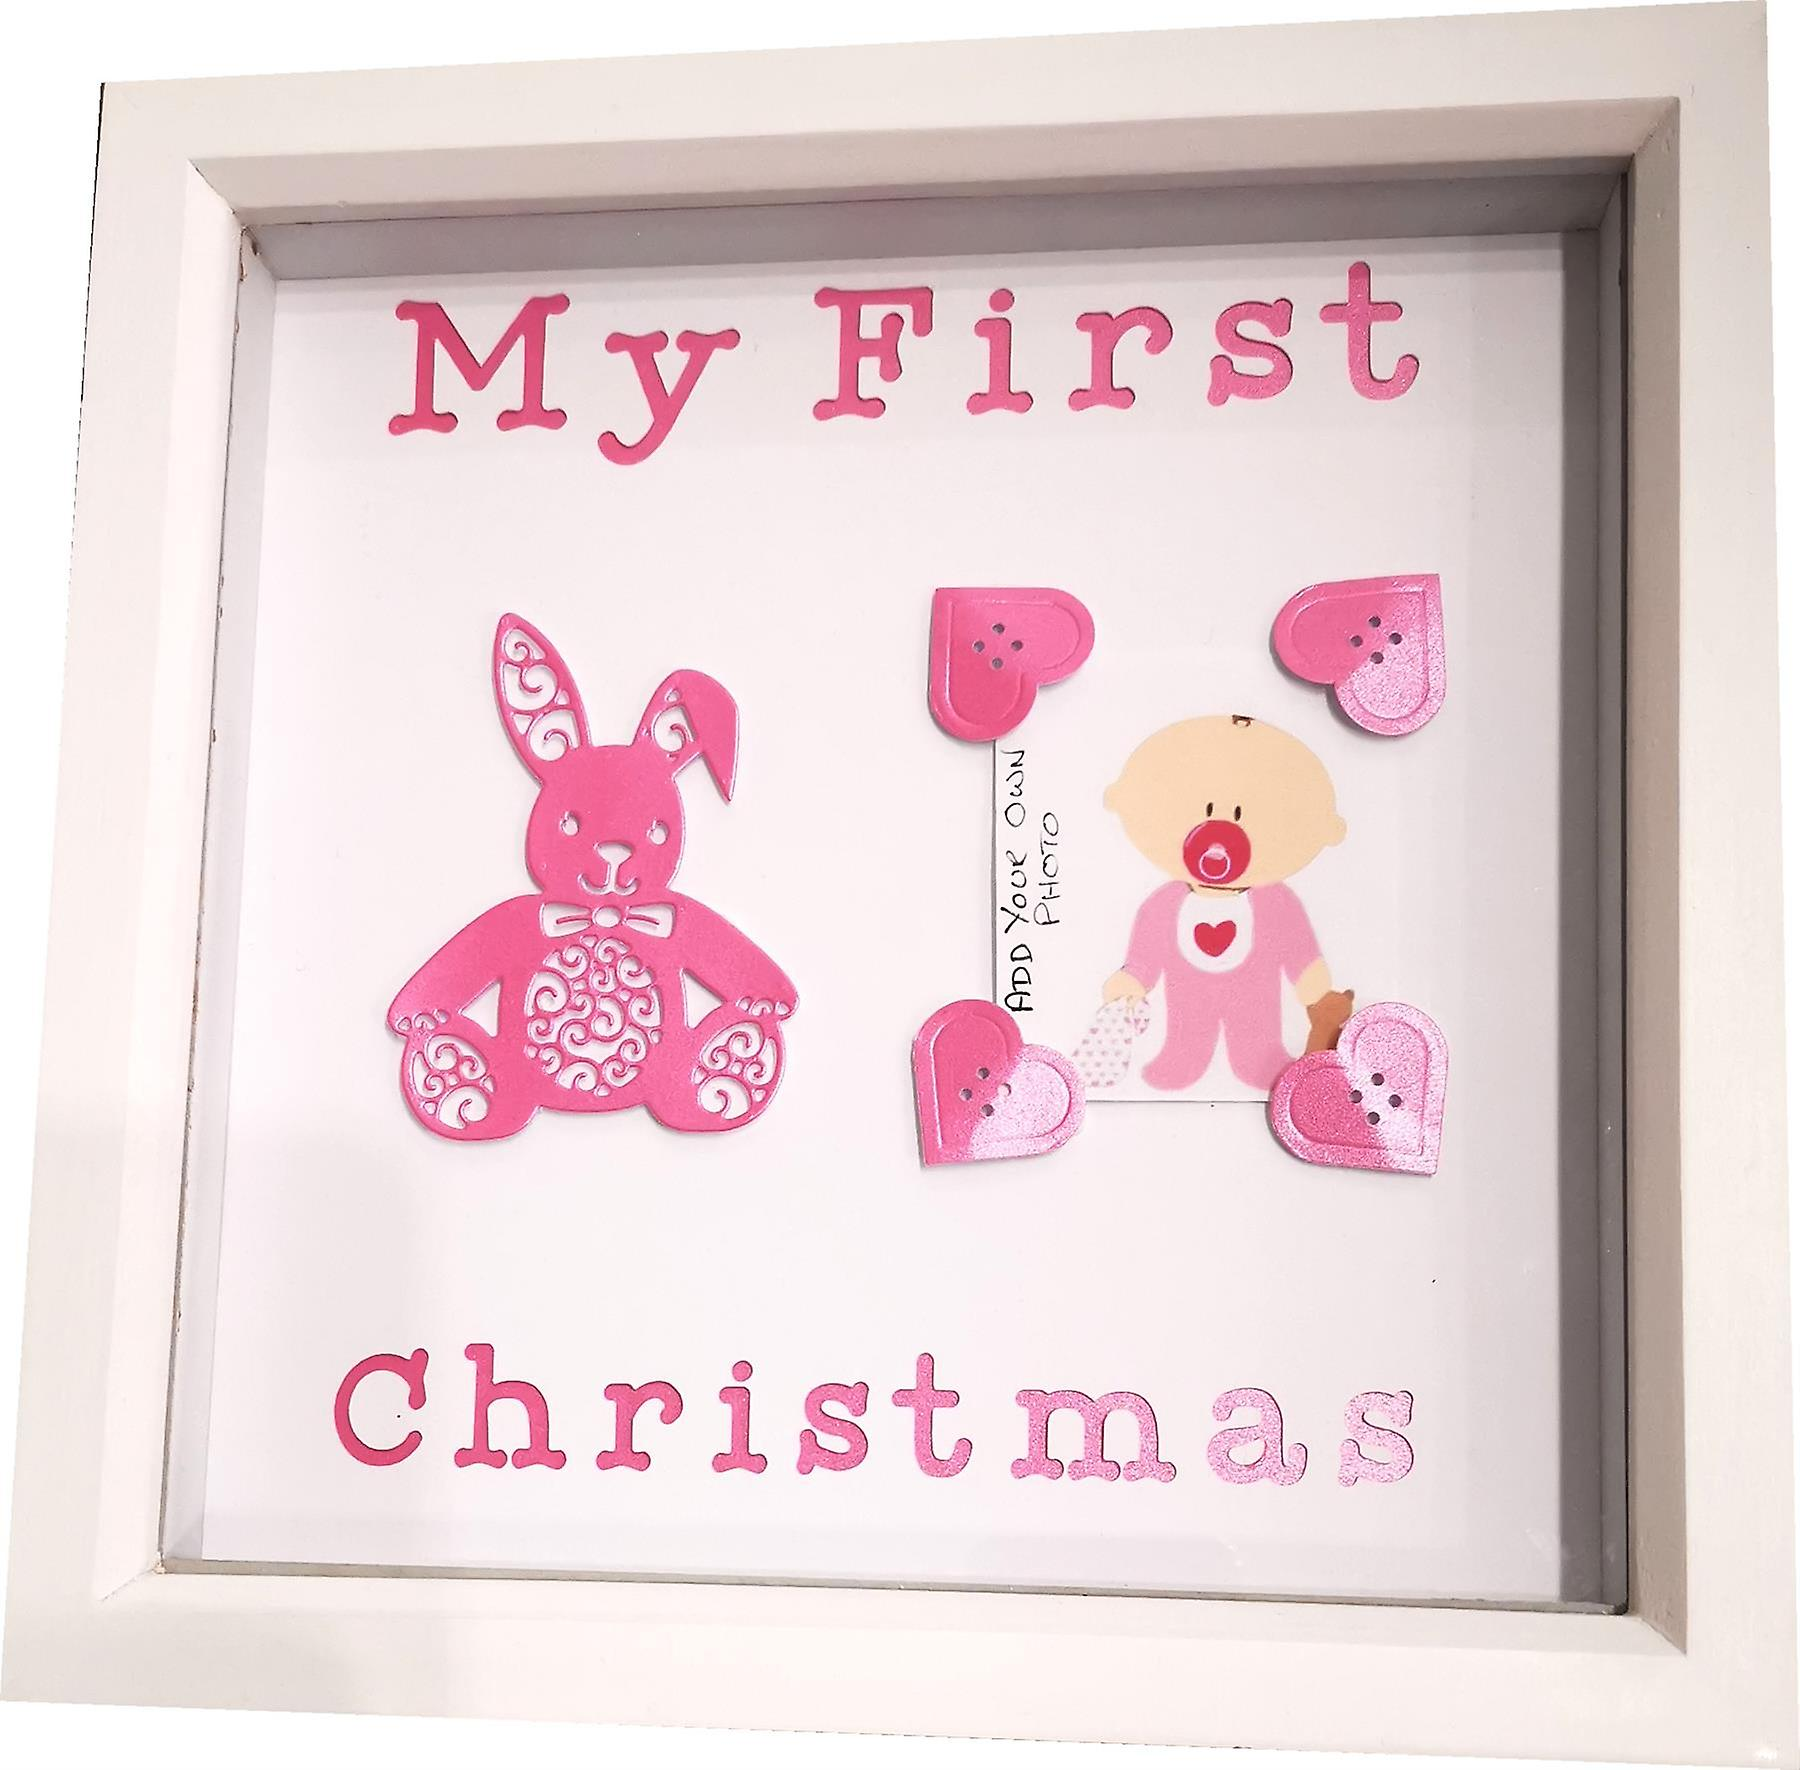 Sweet Pea Designs Frame My First Christmas Frame Pink